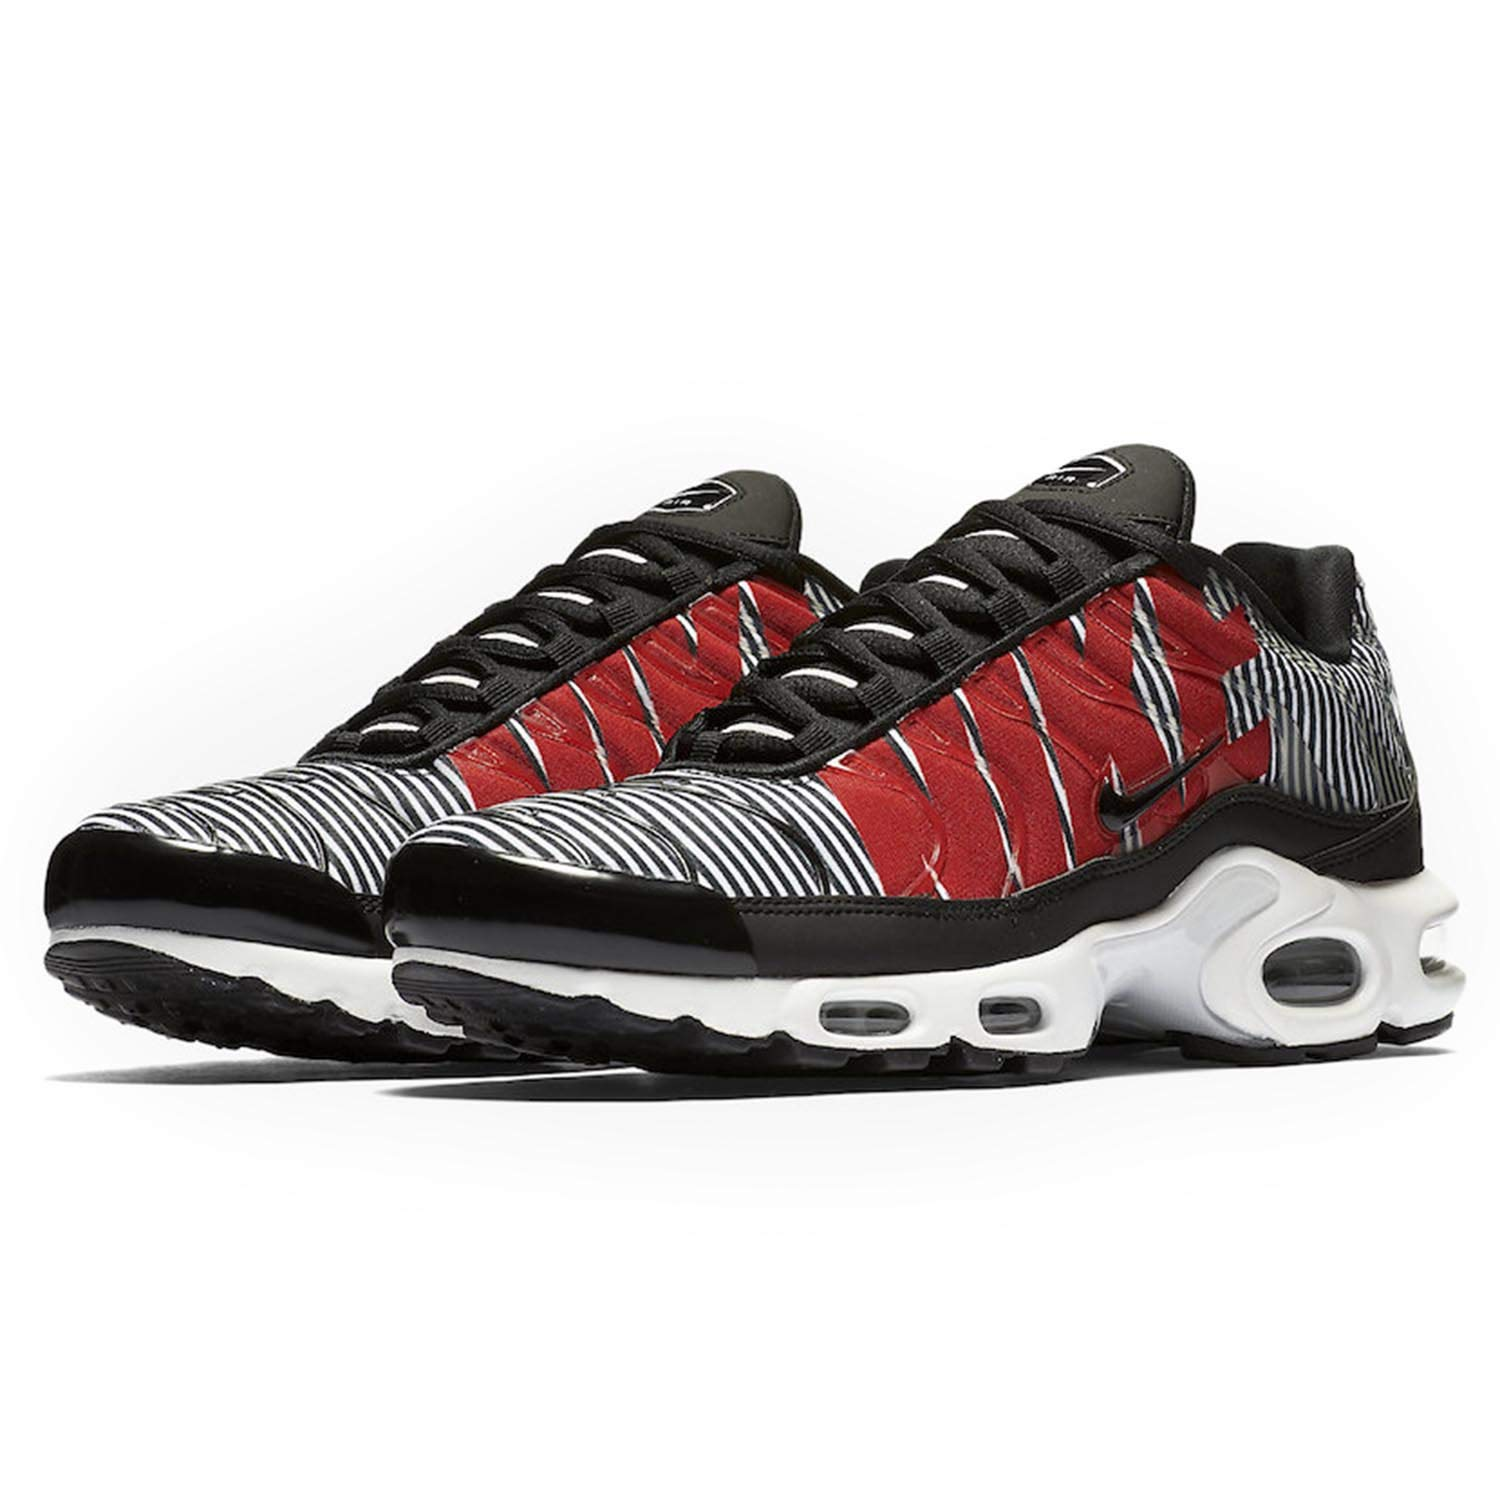 Mens WhitePure Platinum Nike Air Max Plus Tn Ultra Sale UK